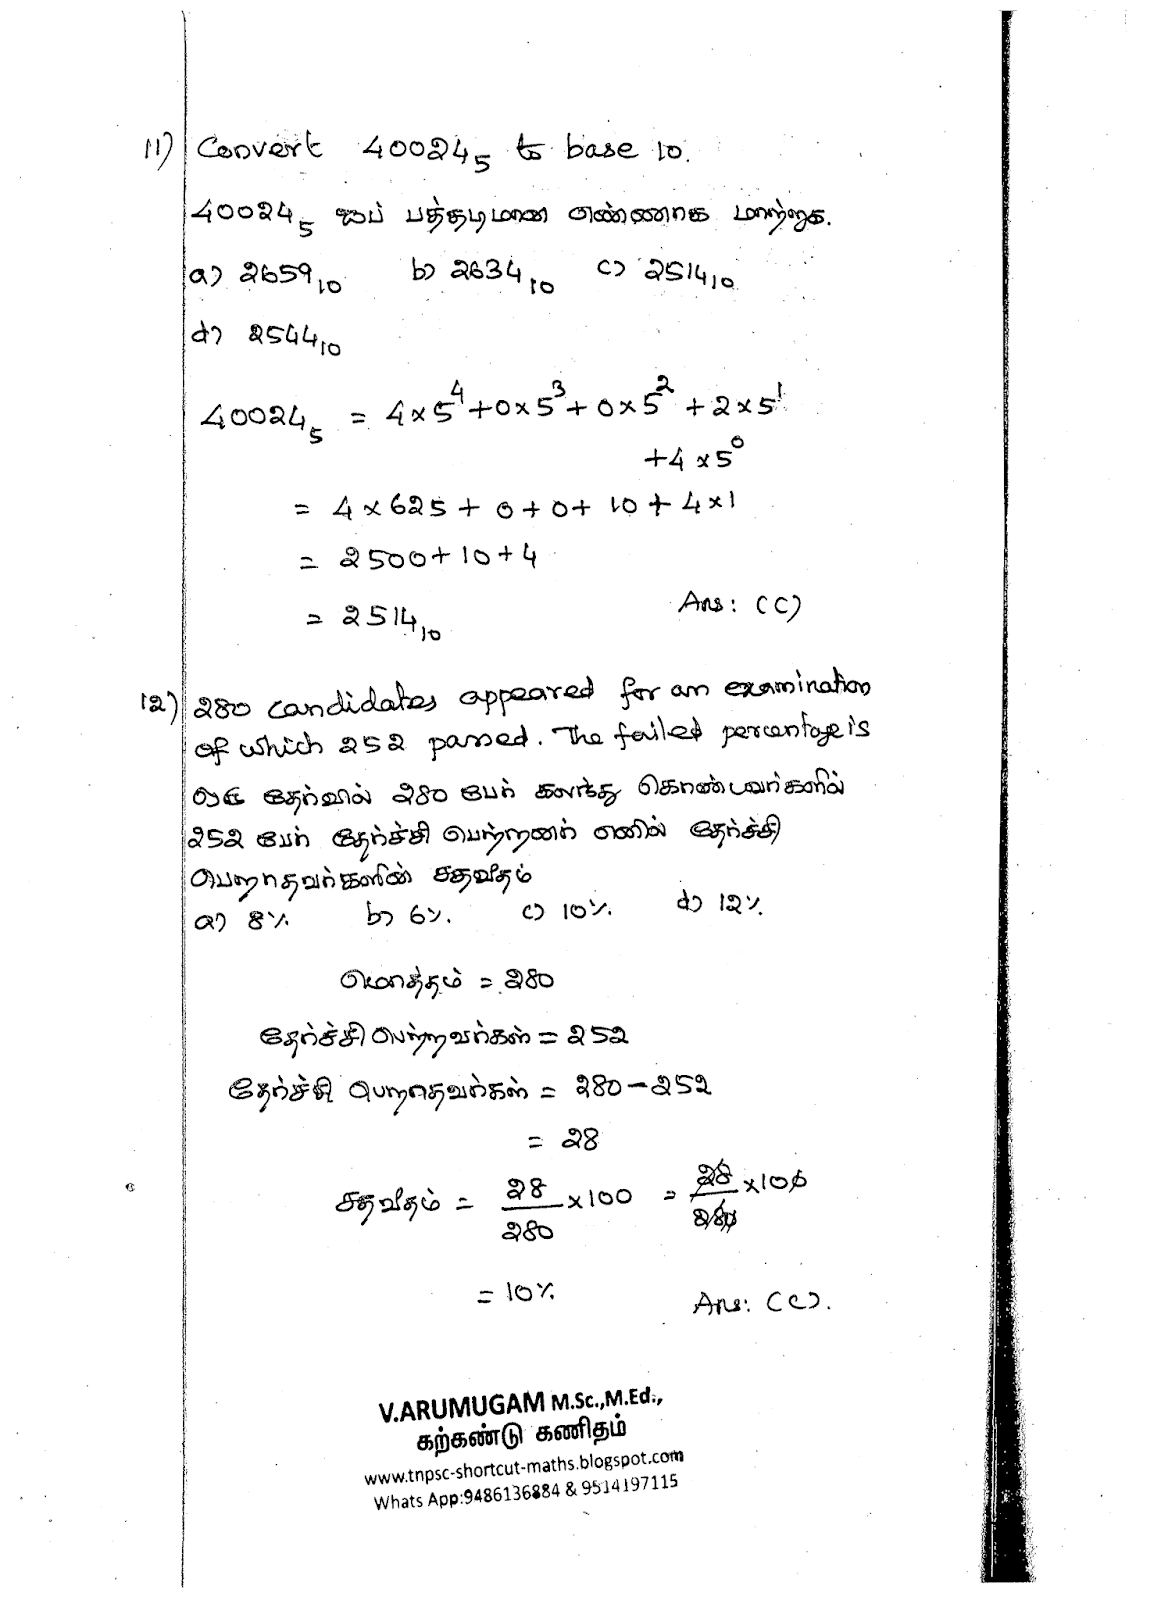 TNPSC – 2019 - Assistant Director and Child Development Project Officer in the Department of Social Welfare and Nutritious Meal Programme included in Tamil Nadu General Service, 2018-2019 EXAM - EXAM DATE: 16.11.2019 & 17.11.2019. PAGE - 06/13